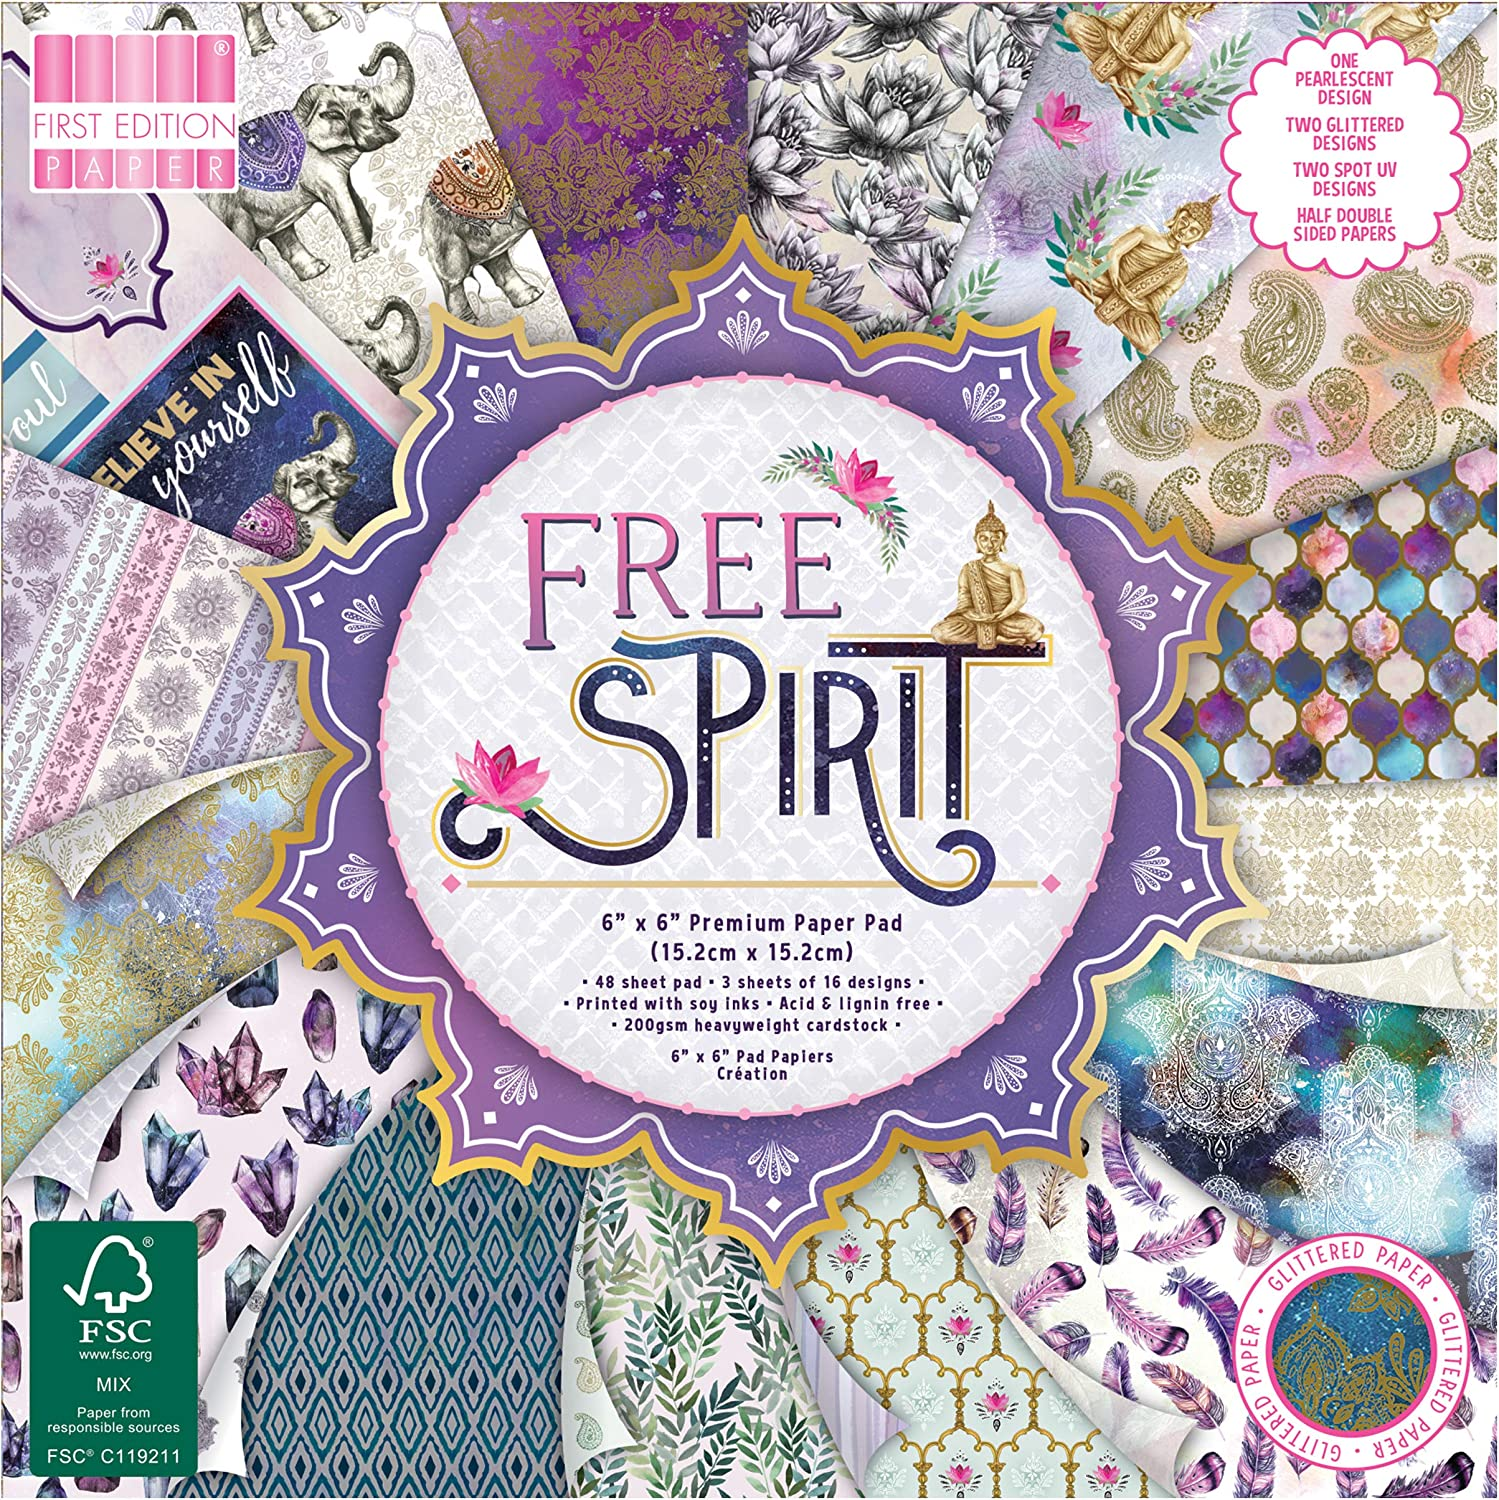 Scrapbooking Home Decor /& Papercraft Soy Inks-for Card Making First Edition FEPAD214 FSC 6x6 Paper Spirit-48 Sheet Pad Acid /& Lignin Free Multicolour 200gsm Heavyweight Cardstock 6x6